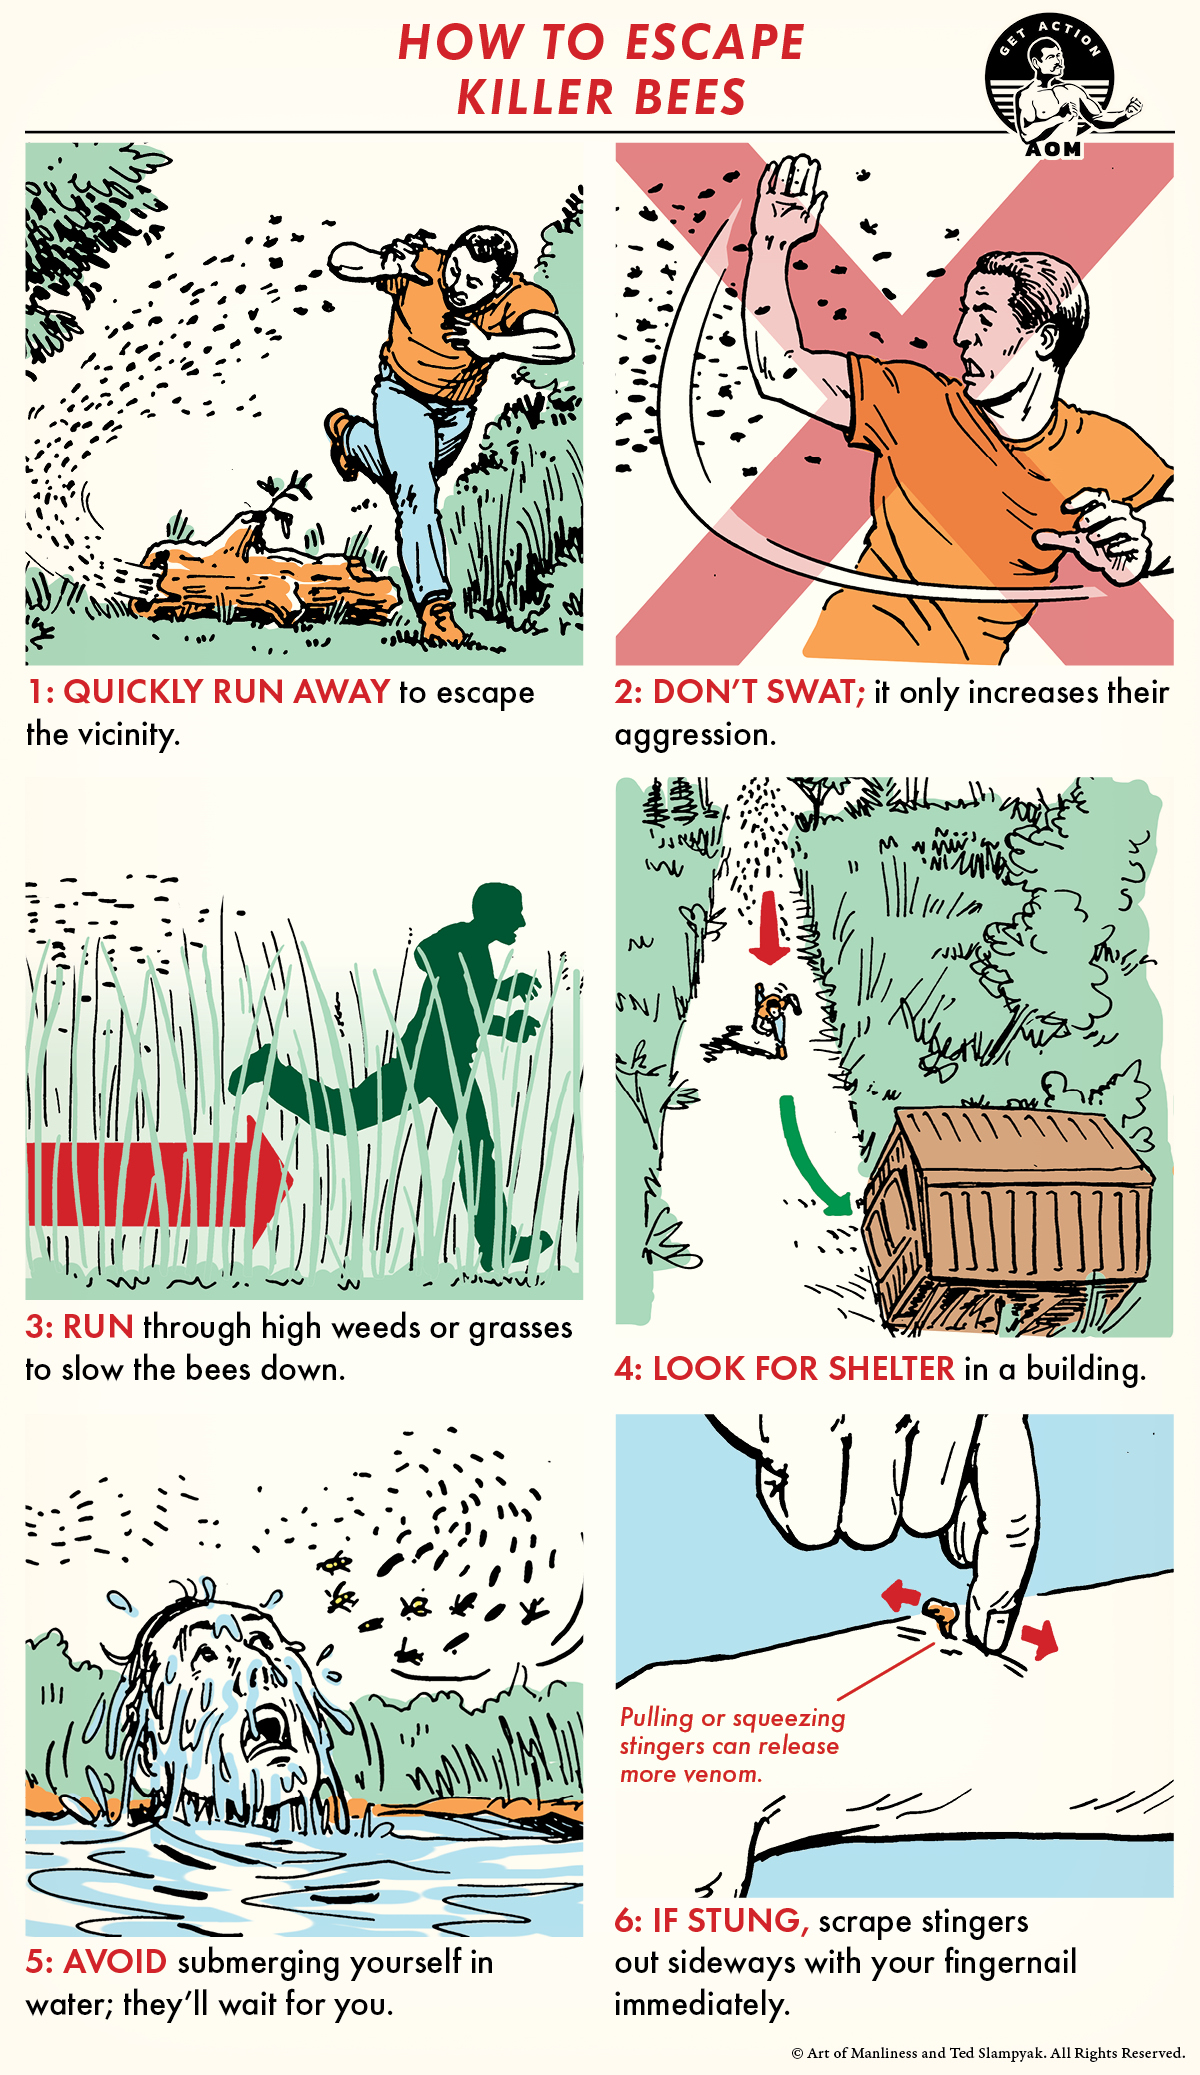 Comic show how to escape from killer bees.